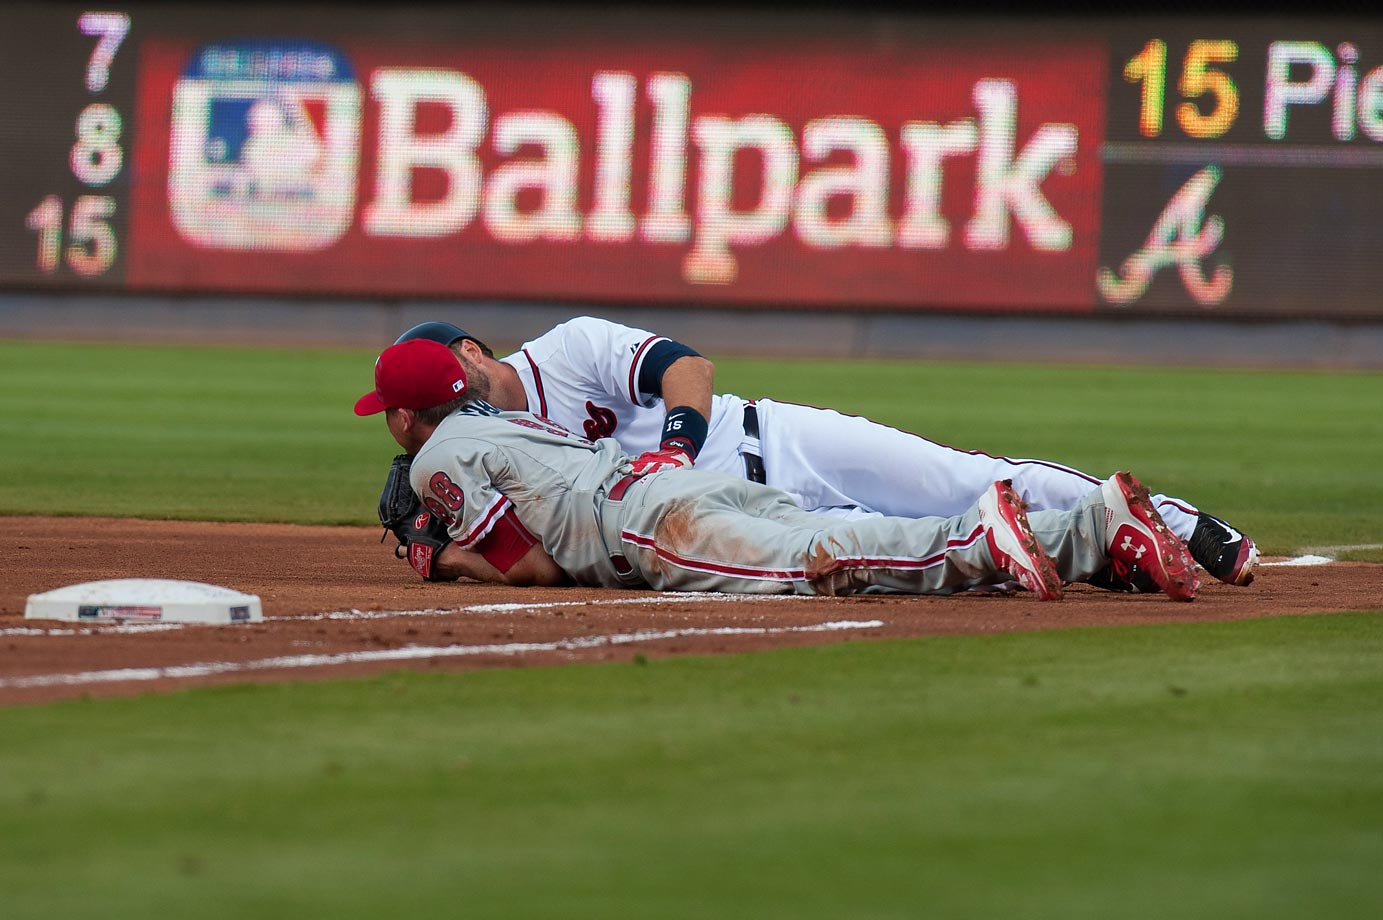 A.J. Pierzynski of the Atlanta Braves and Kevin Correia of the Philadelphia Phillies after their collision at first base.